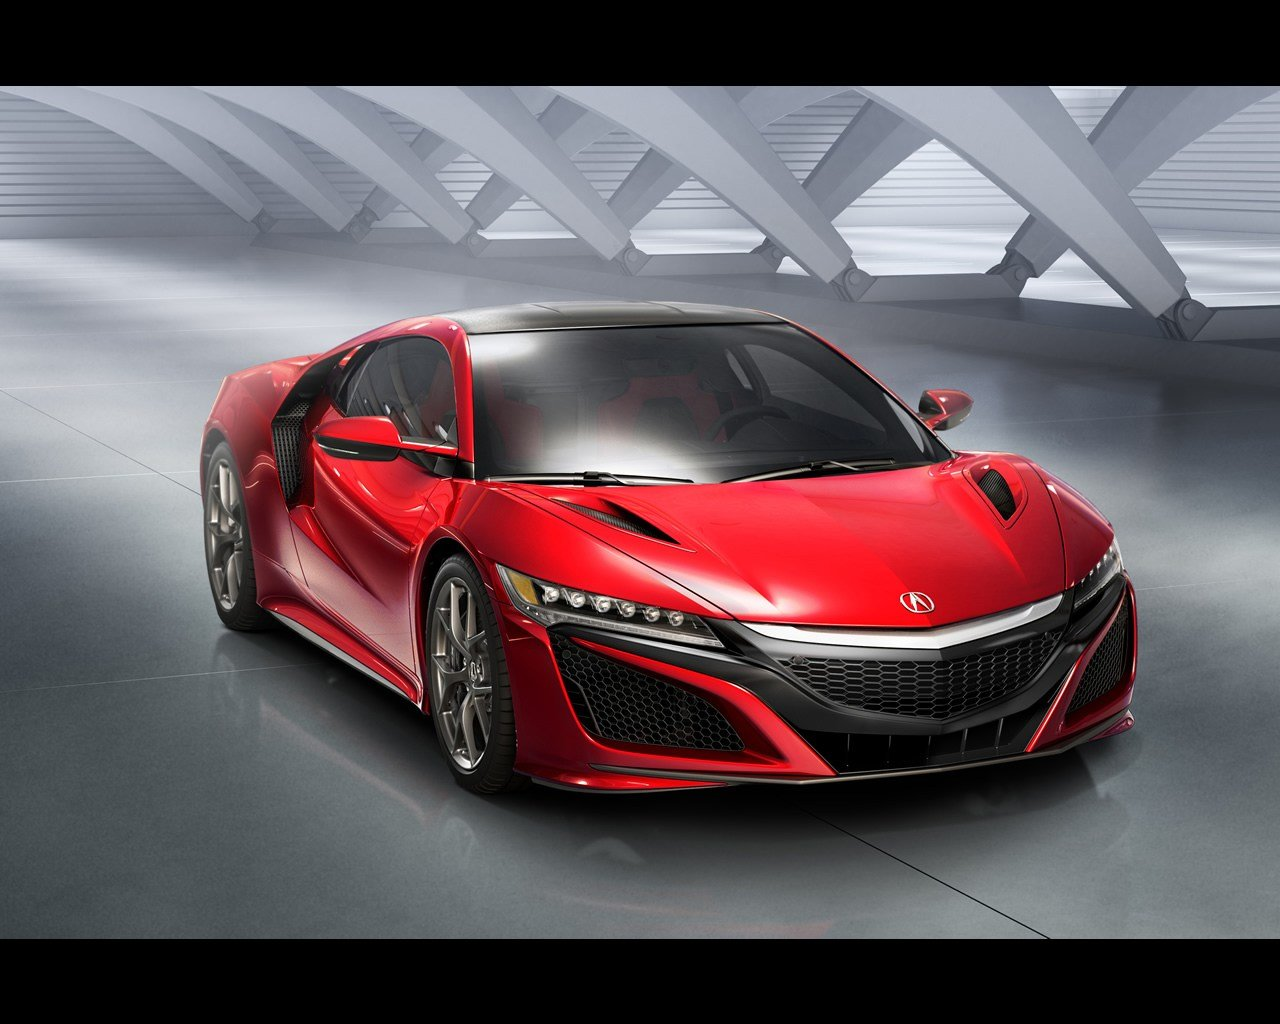 Latest Honda Acura Nsx Supercar 2015 Free Download